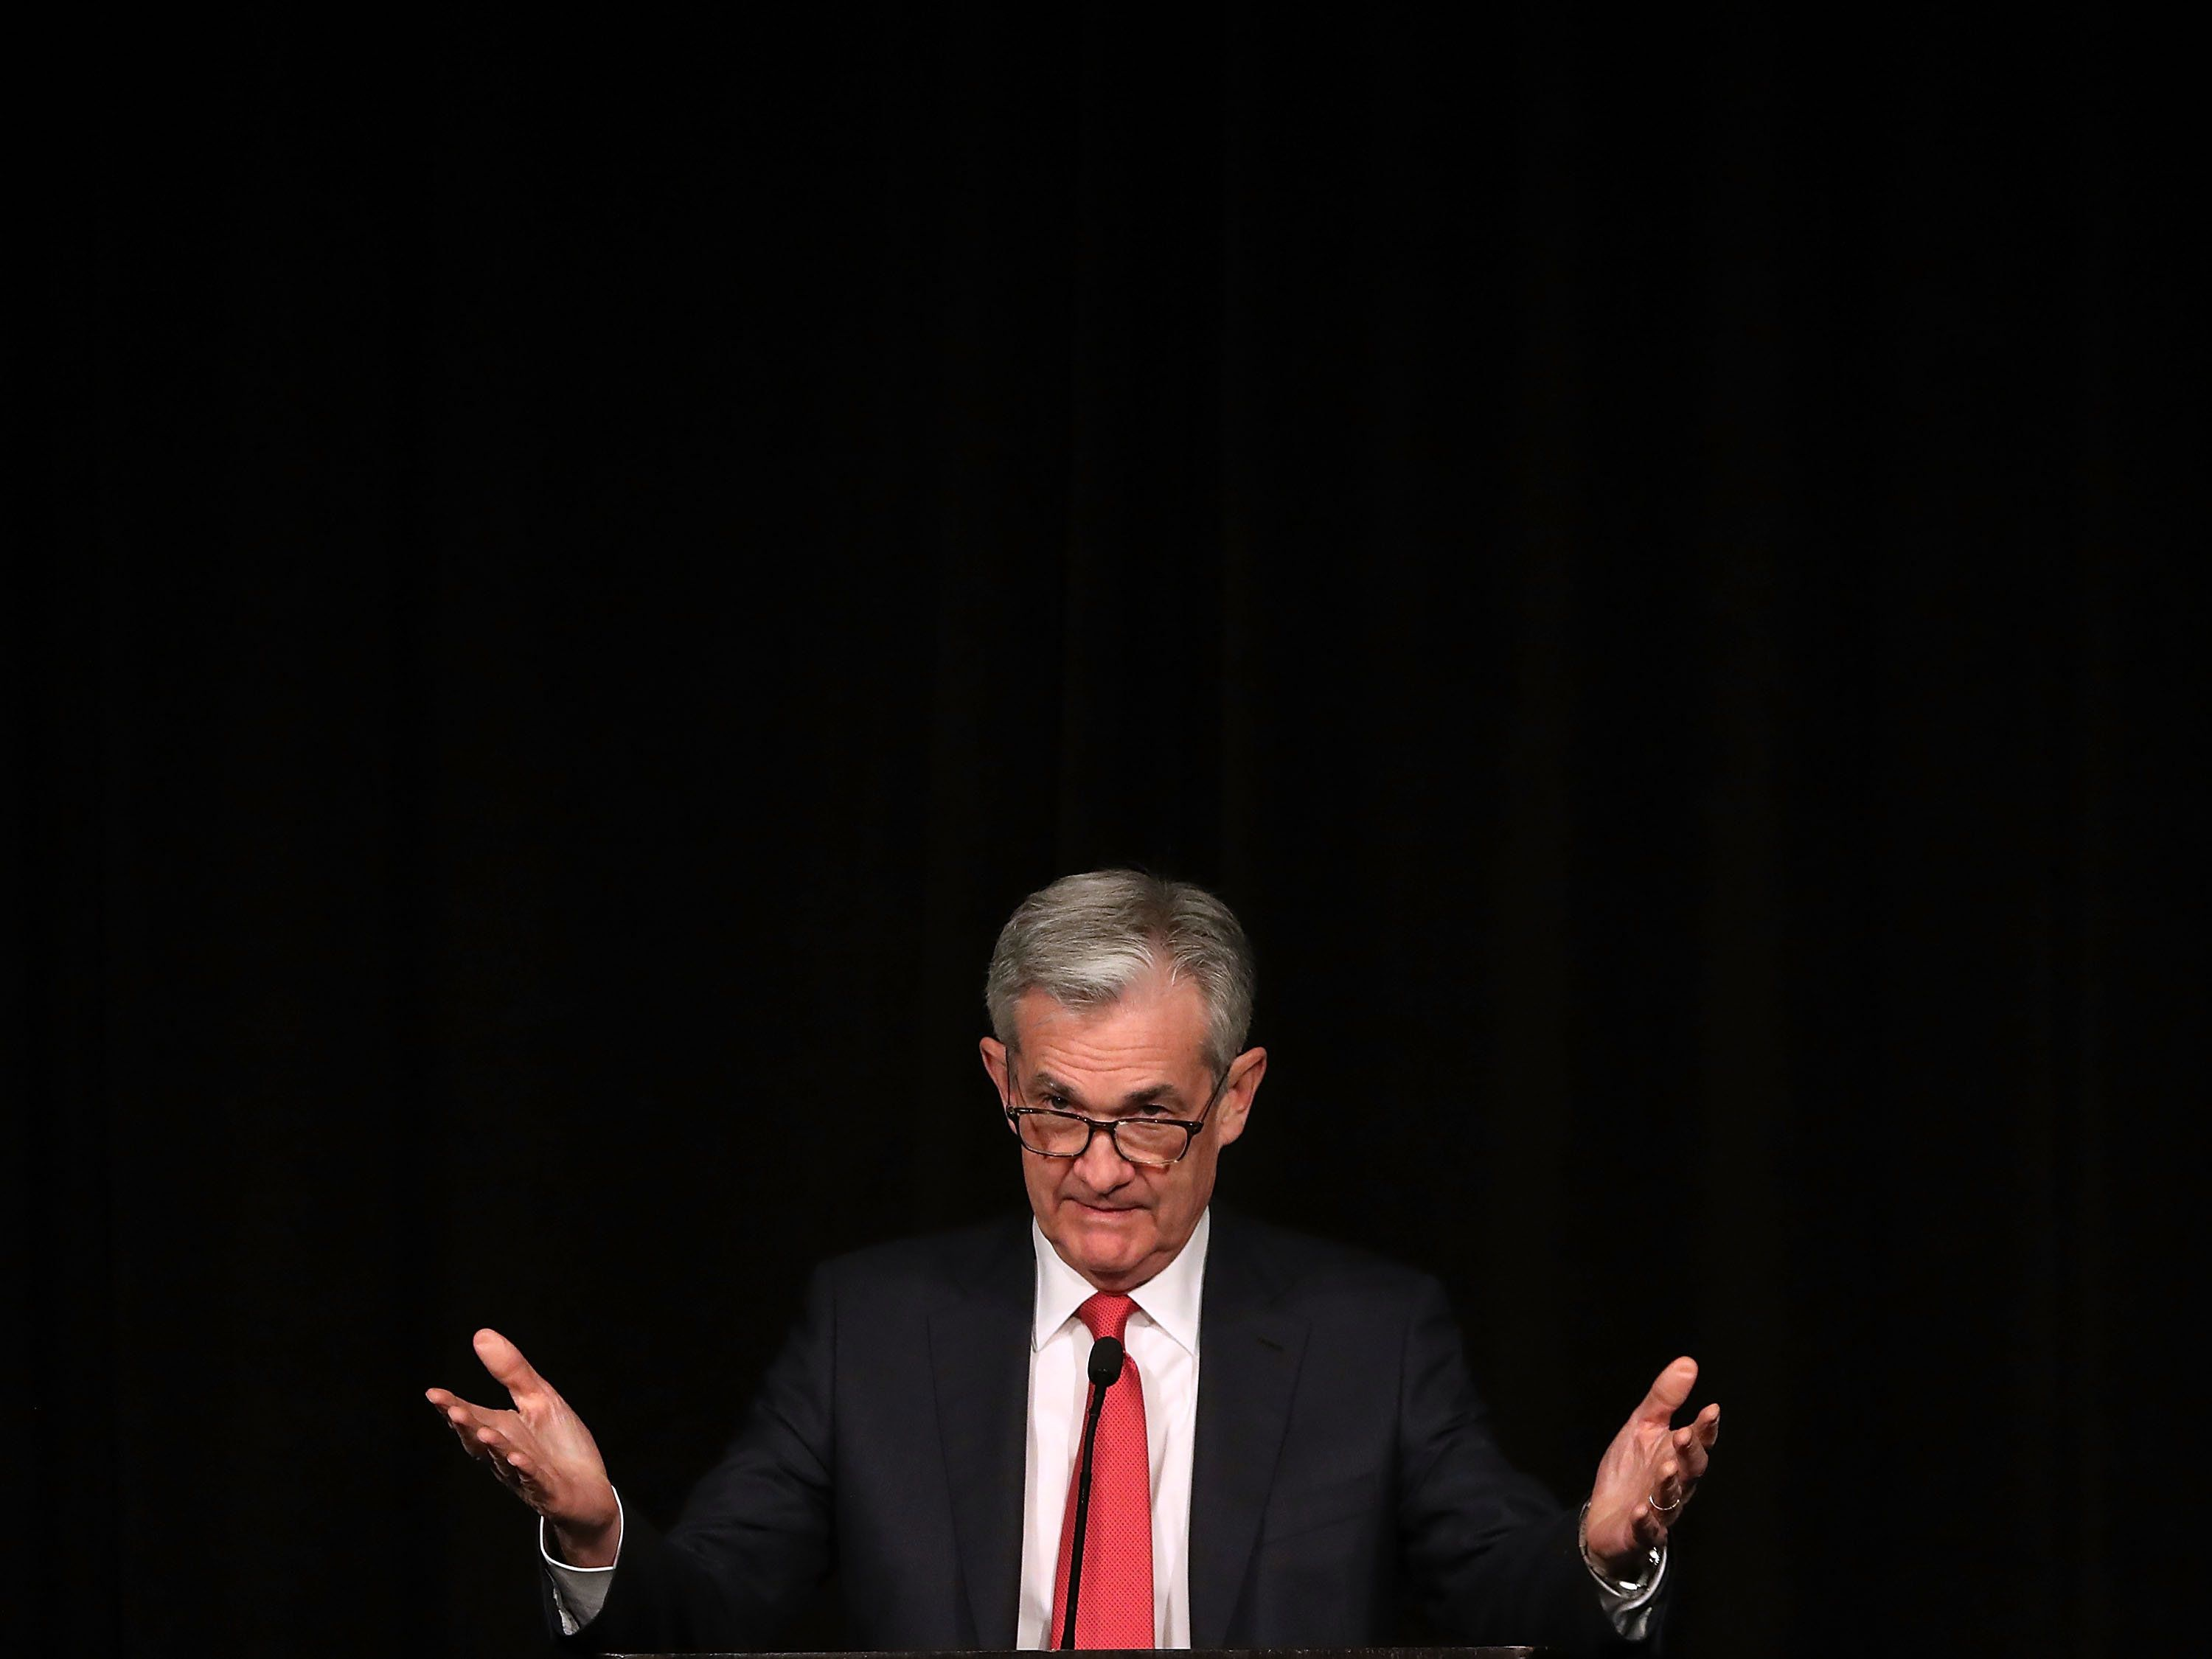 Federal Reserve Board Chairman Jerome Powell in Washington, D.C., Dec. 6. The Fed has been signaling for years that it w